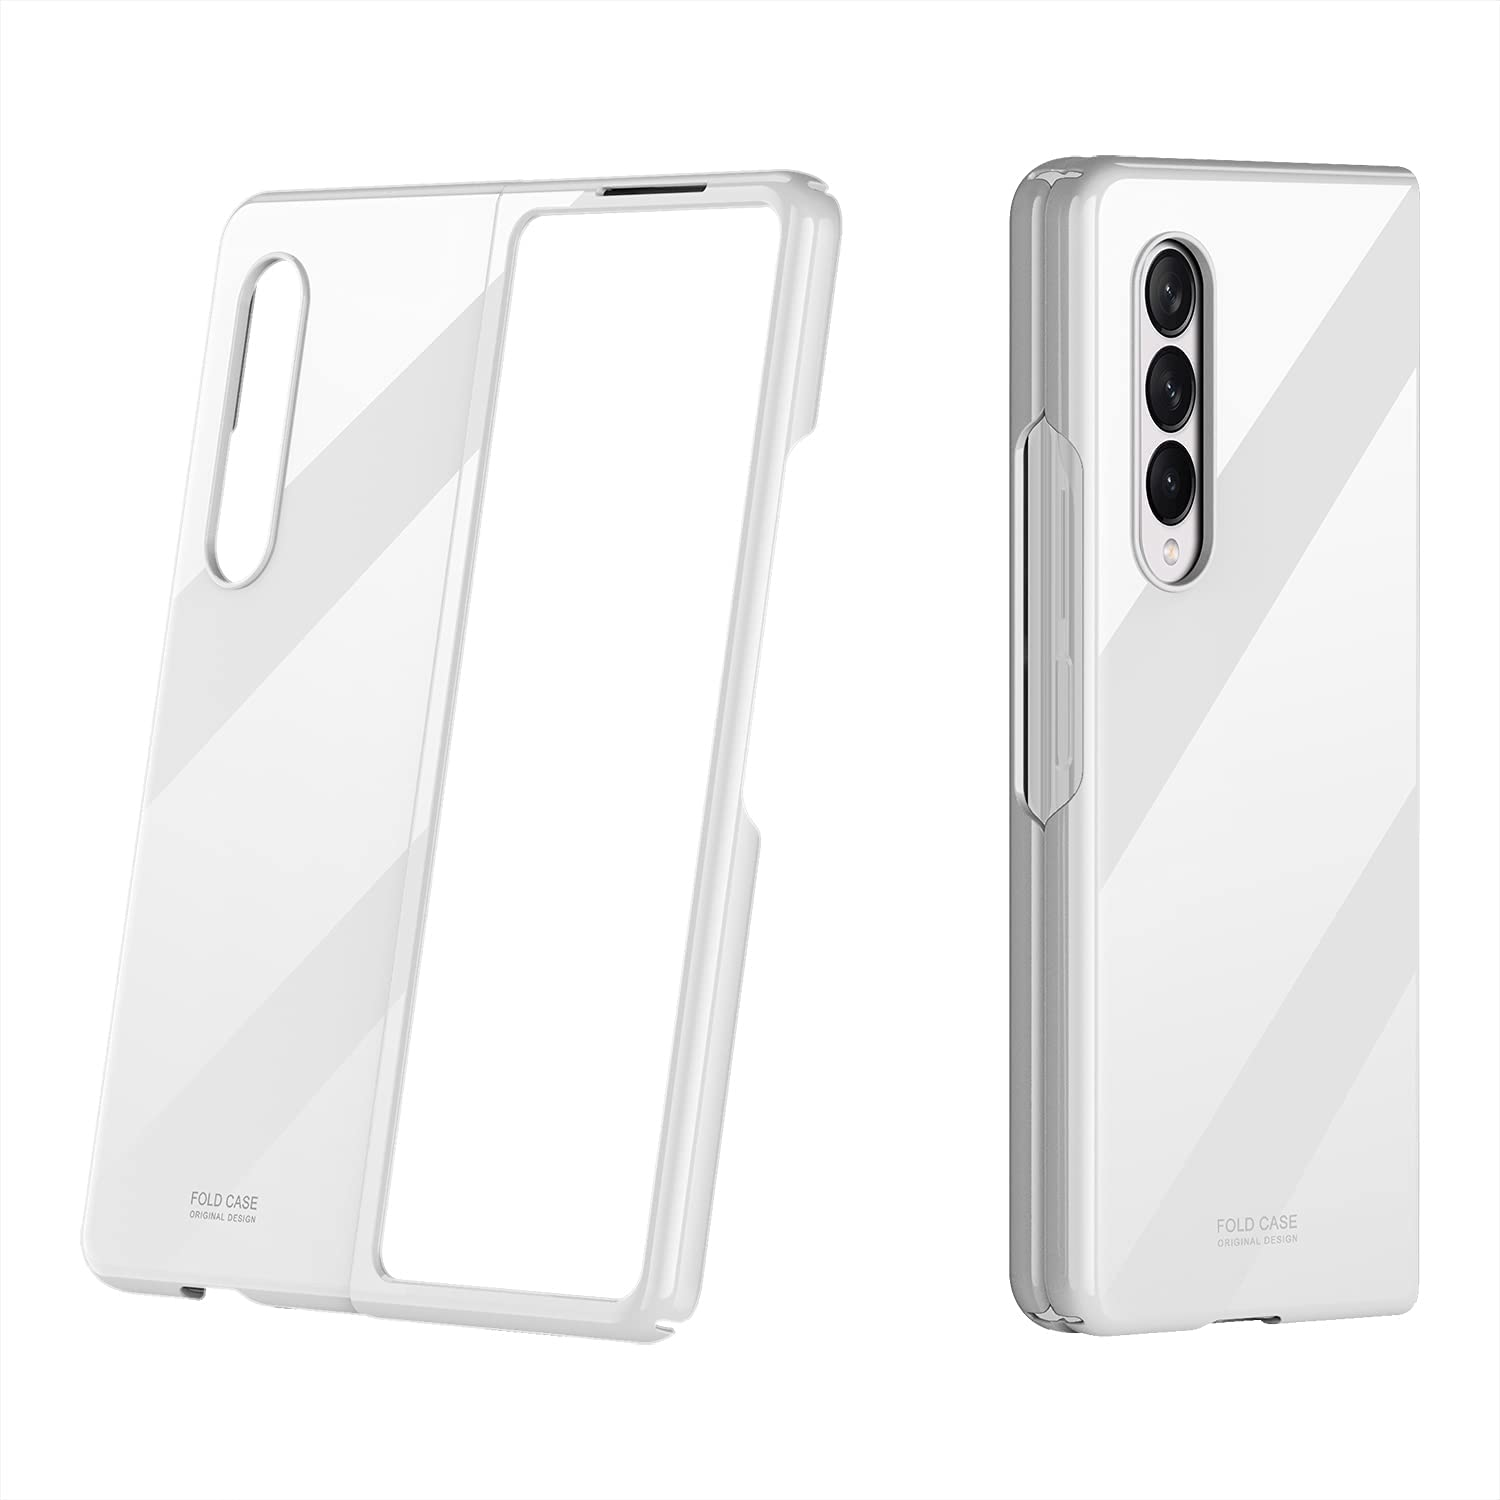 SHBDZGS for Samsung Galaxy Z Fold 3 Case Luxury Plastic Plating Crystal Shockproof Protection Finish Bumper Cover Case for Samsung Galaxy Z Fold 3 5G (White)